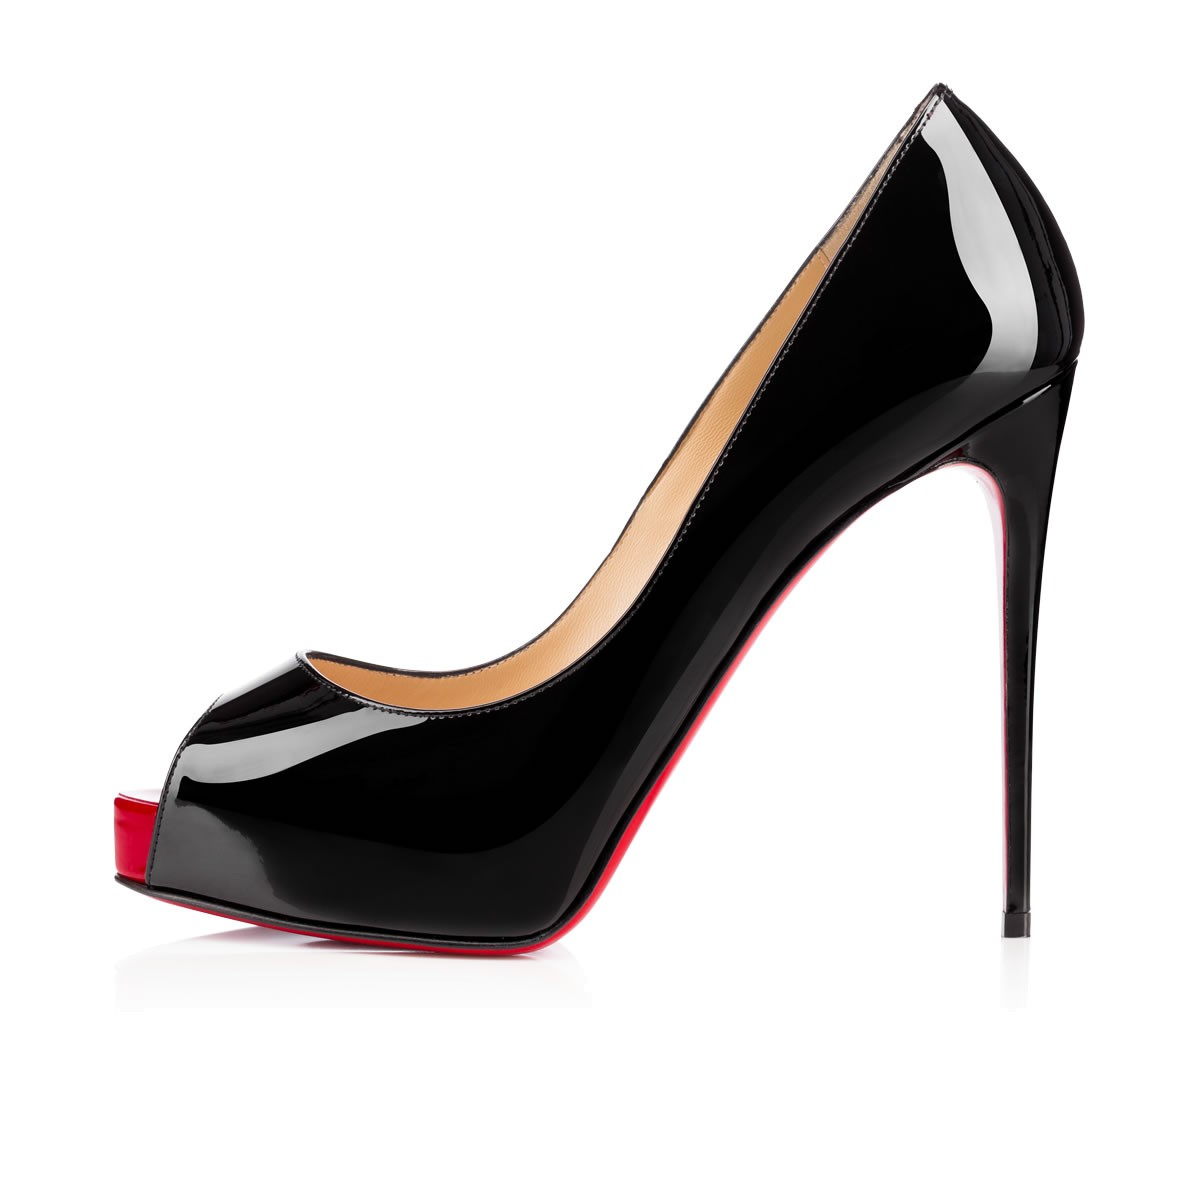 How Take Care of Patent Leather Shoes?